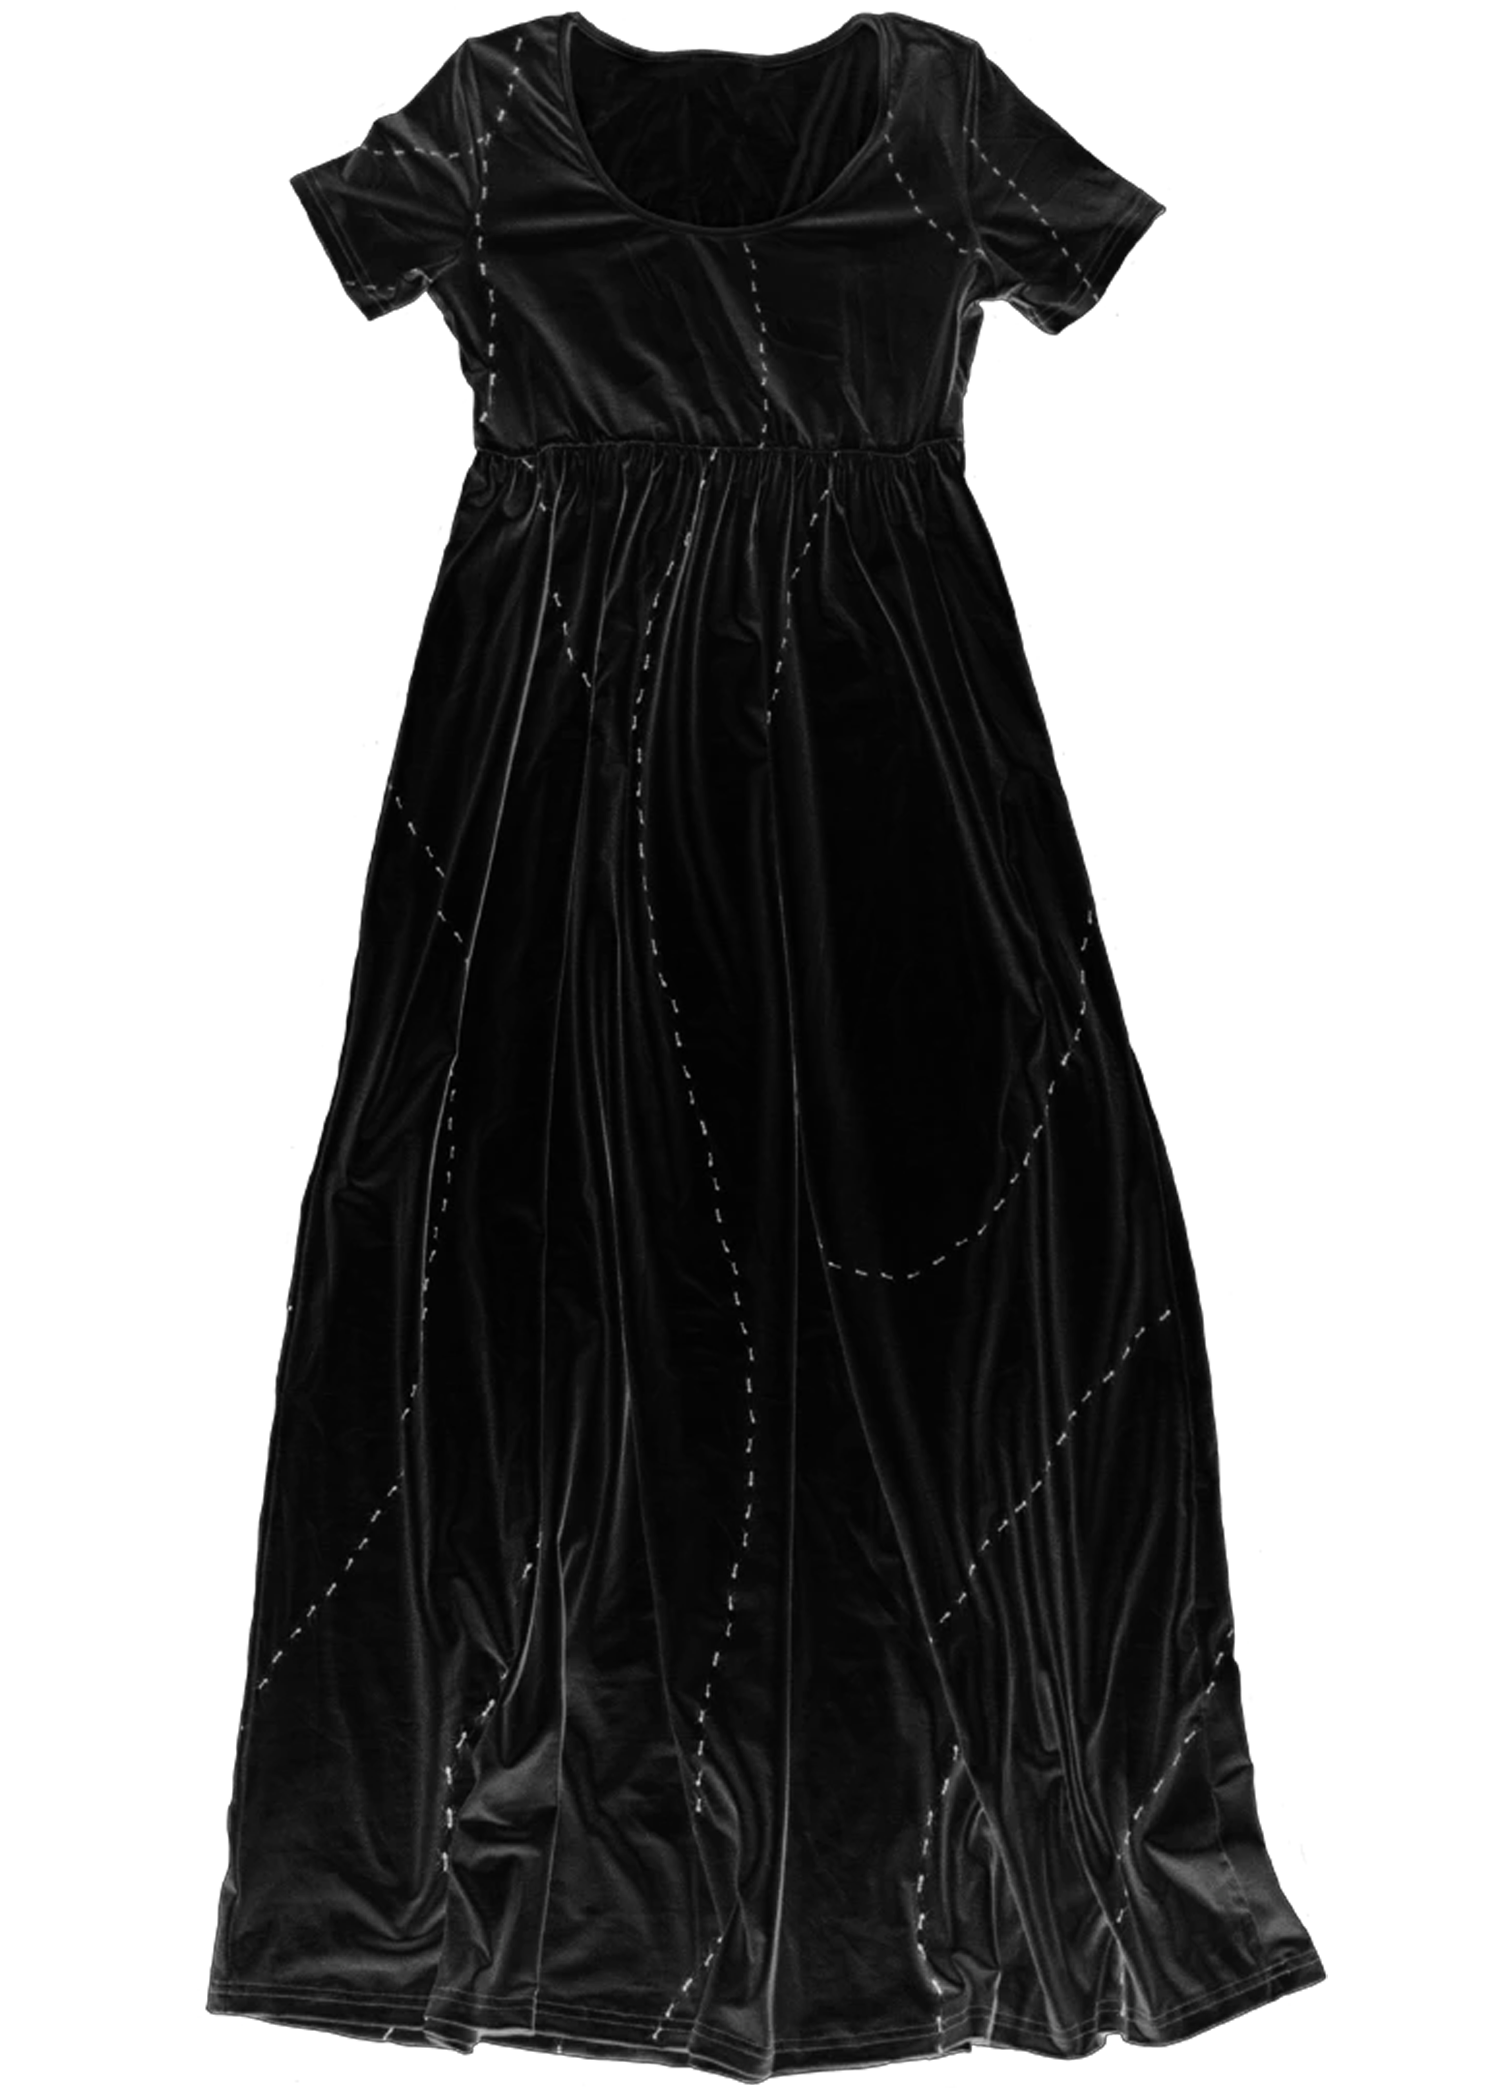 Ant Invasion Maxi Dress in Black